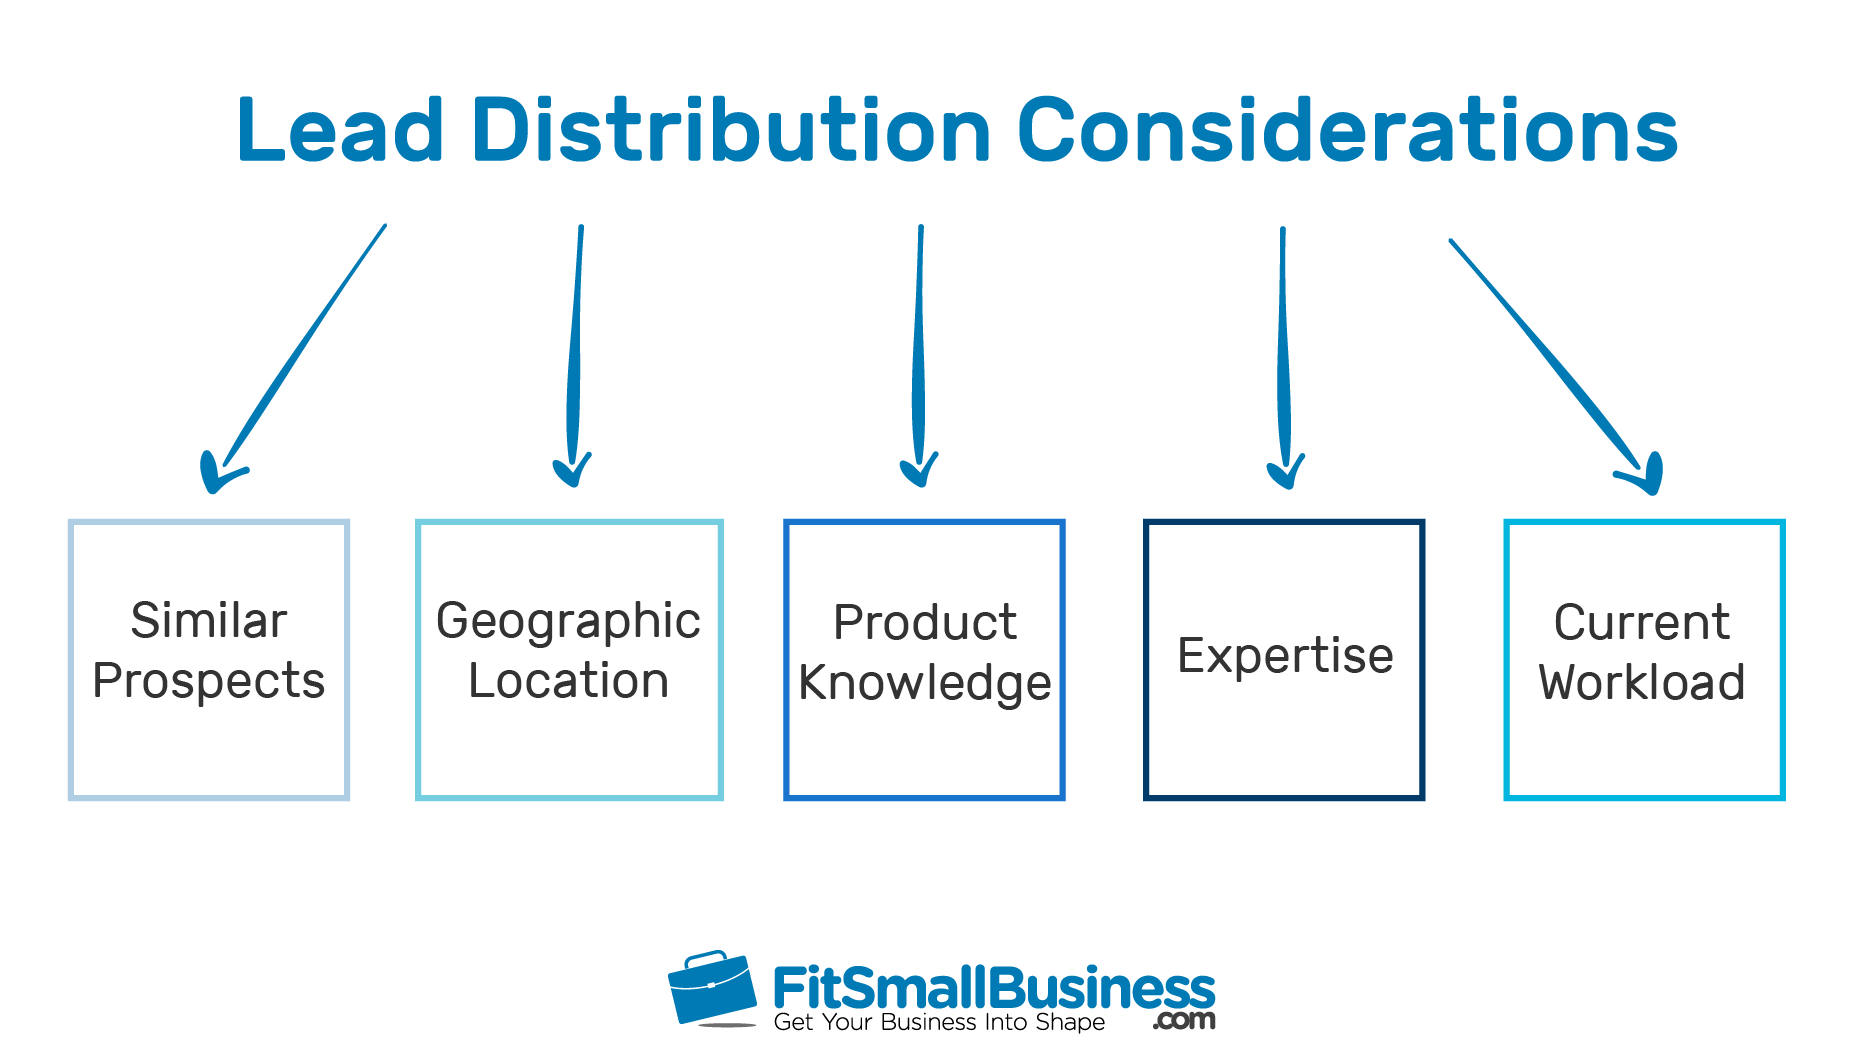 Lead Distribution Considerations chart